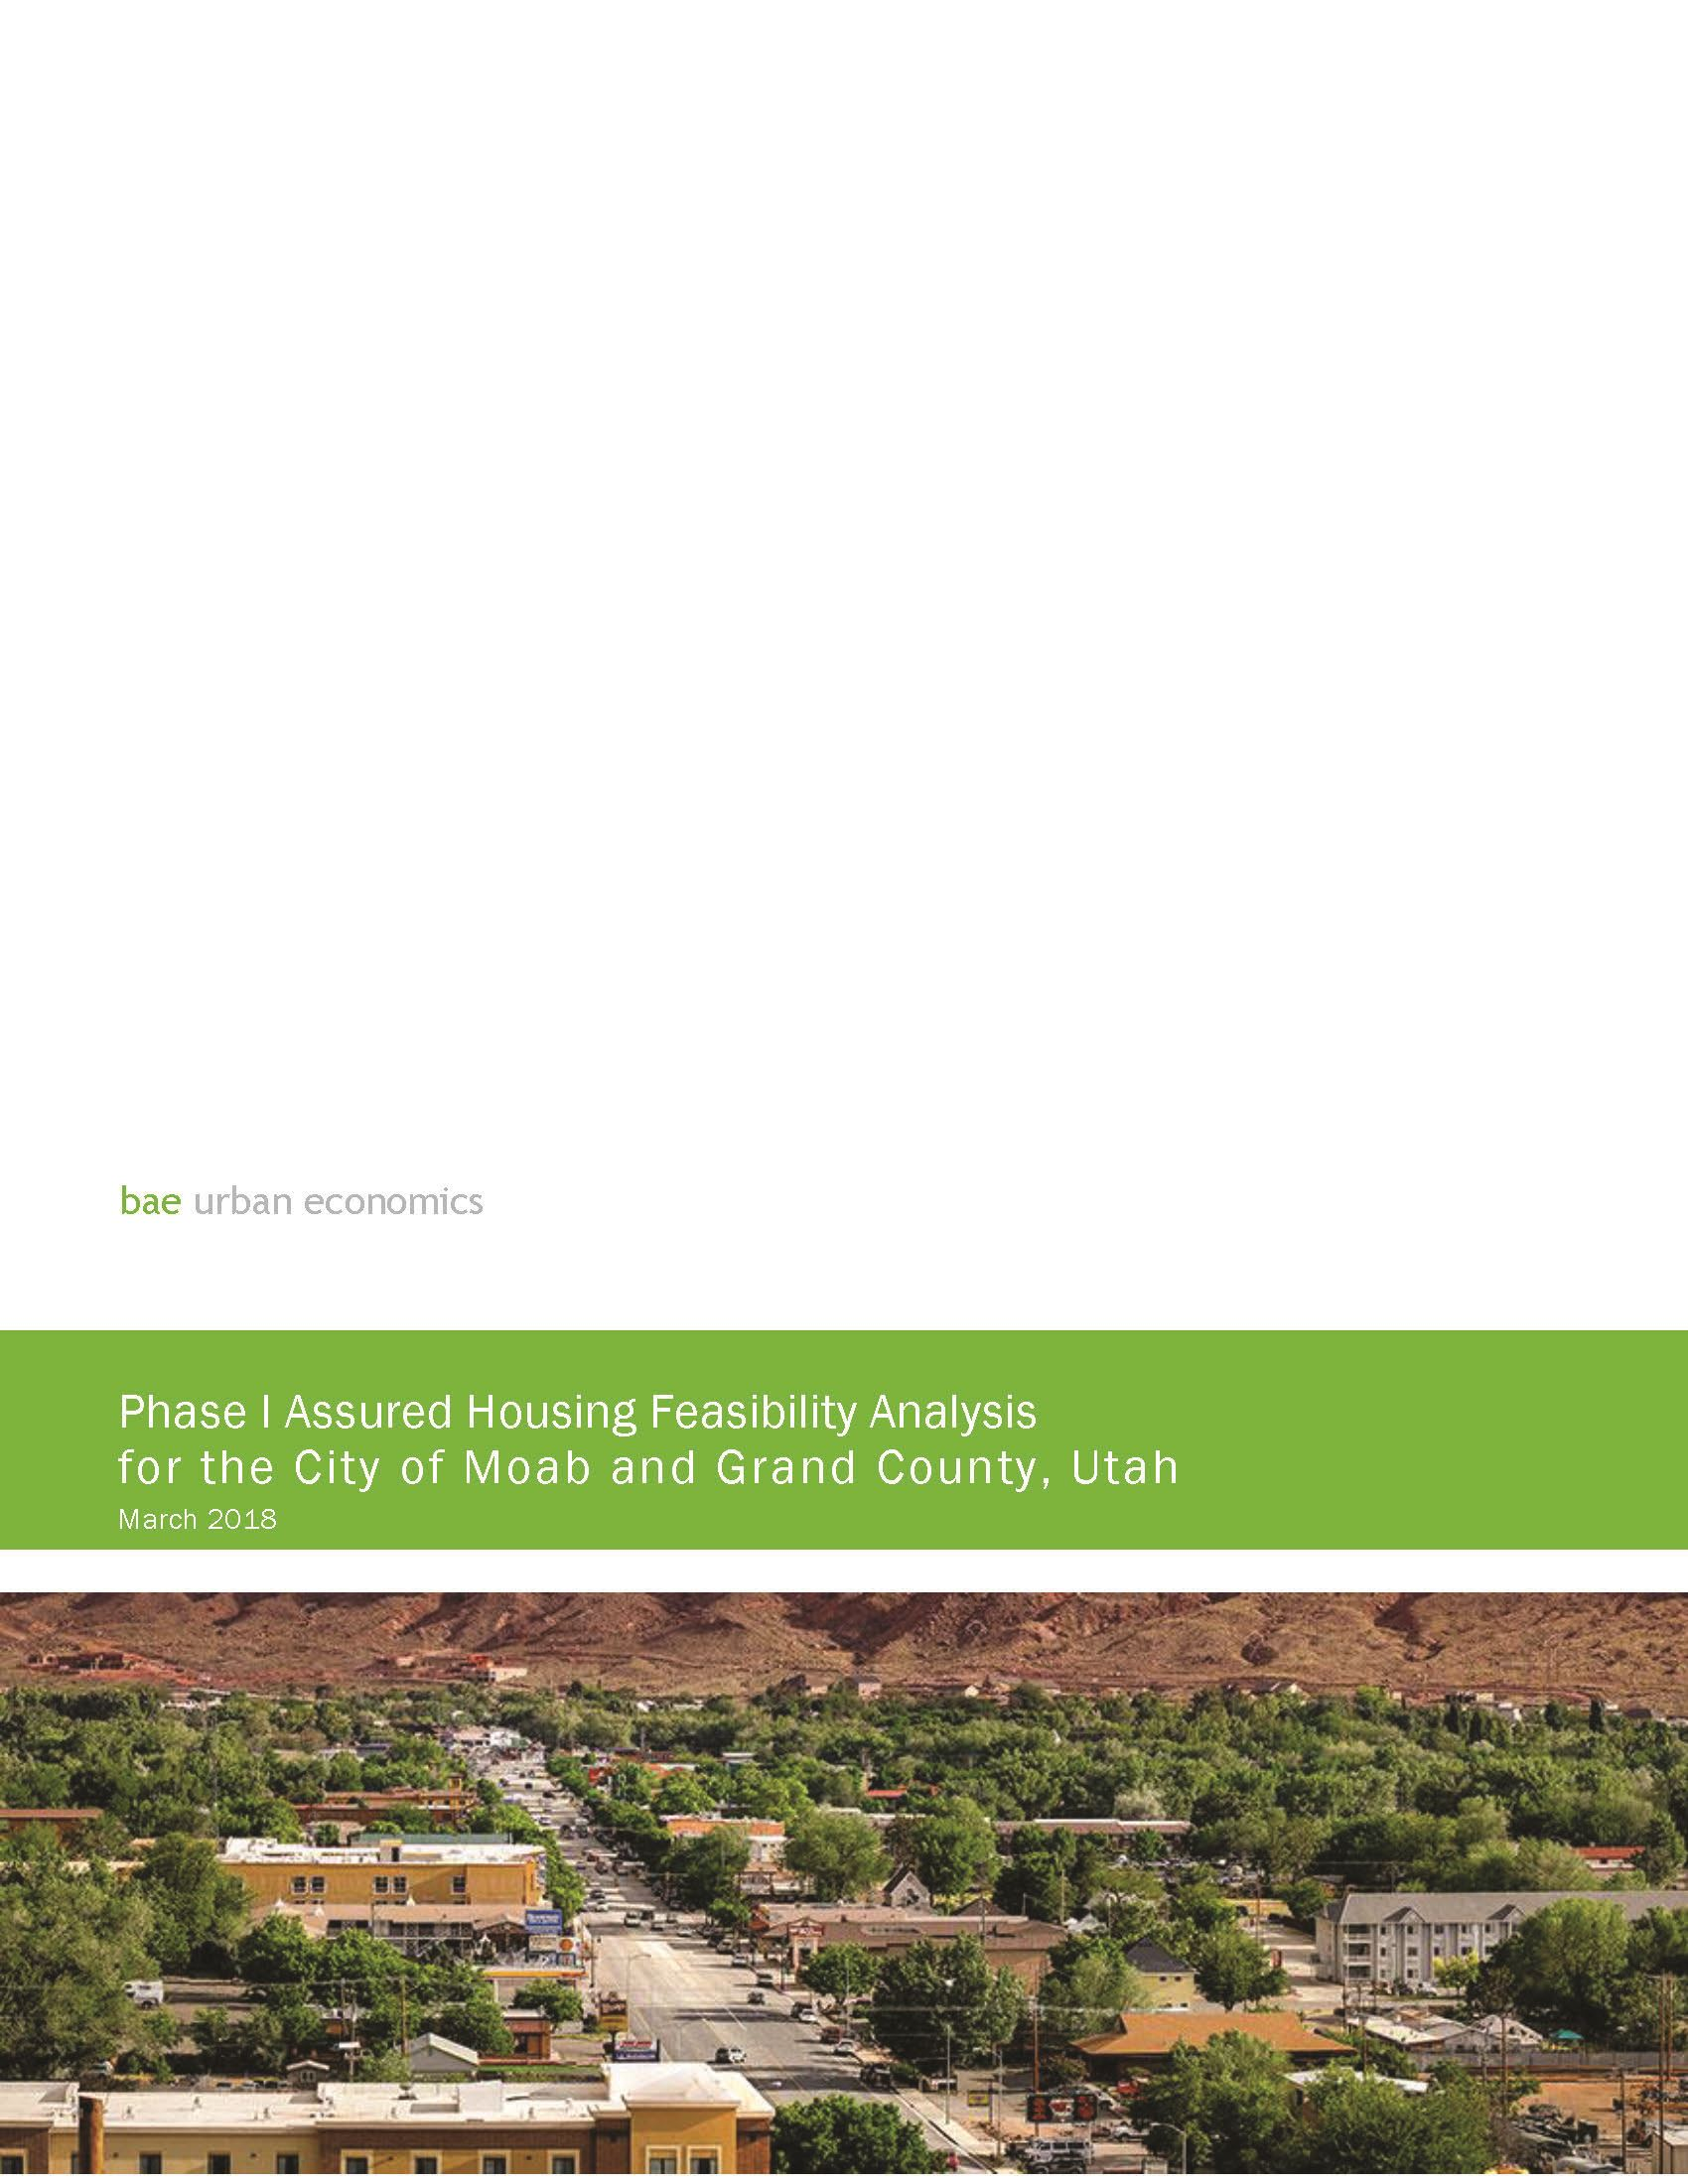 Phase 1 - Economic Feasibility Report - Moab Area Assured Housing